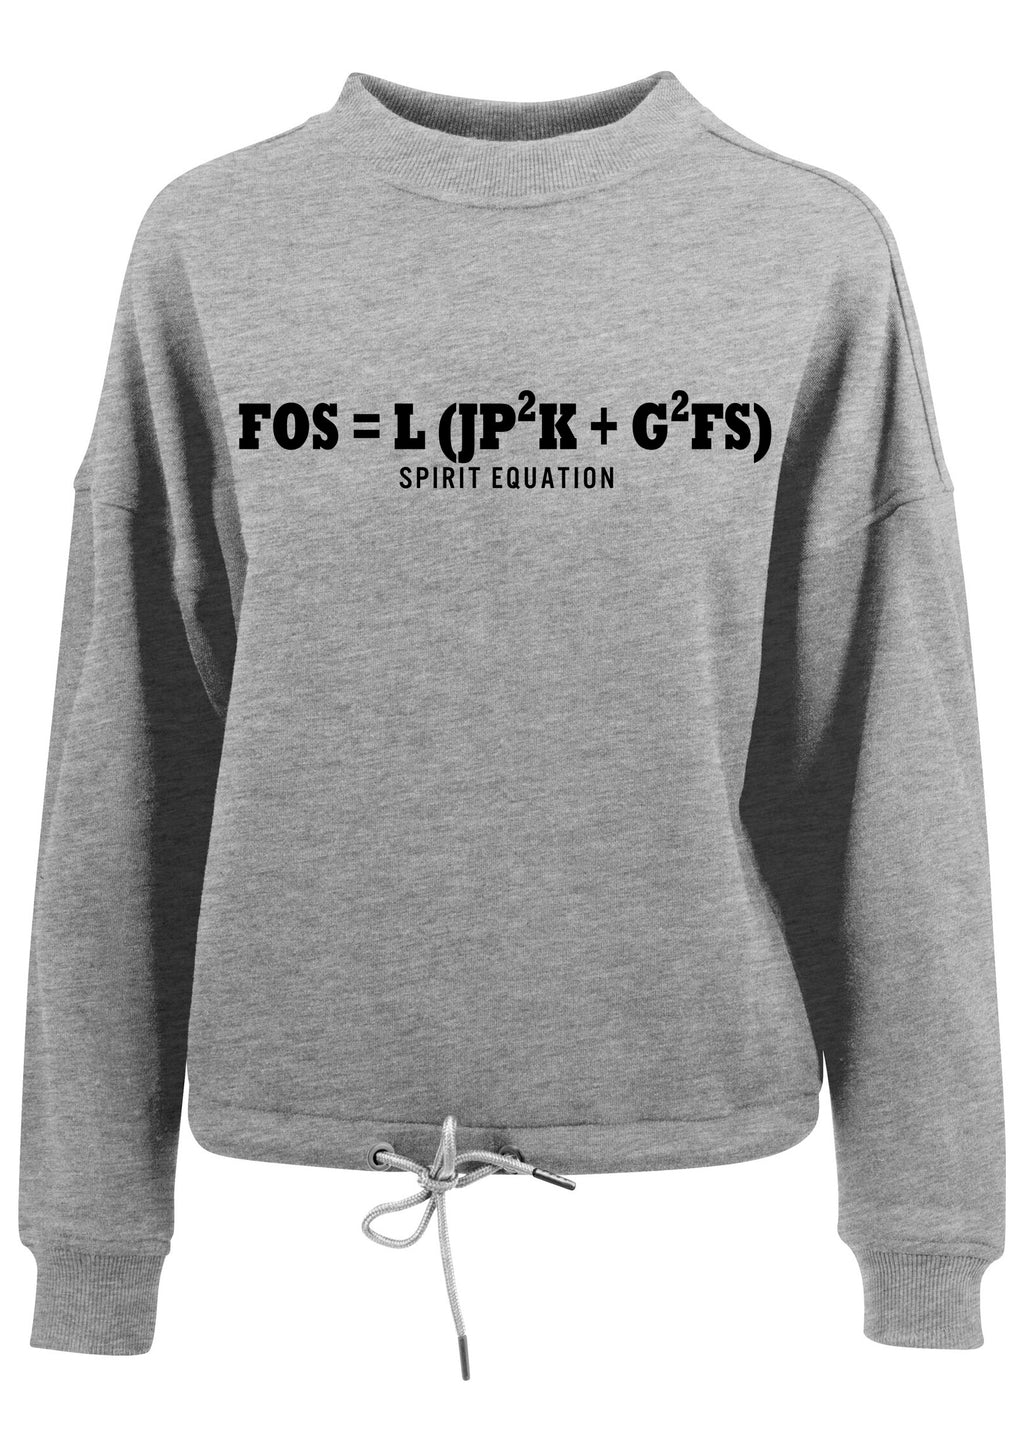 Womens SPIRIT EQUATION Oversized Crew Neck Sweatshirt (Heather Grey)